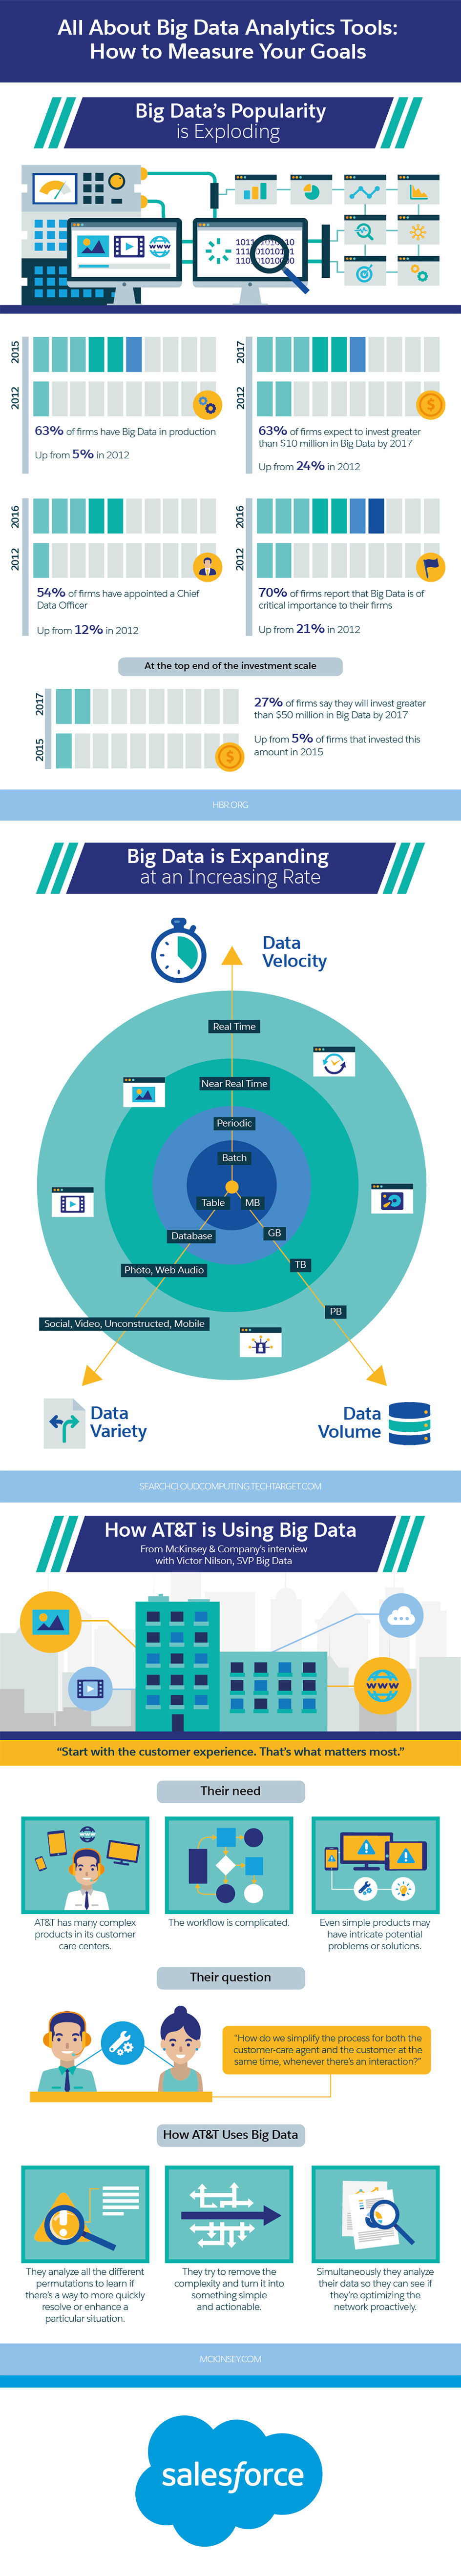 All About Big Data Analytics Tools: How to Measure Your Goals Infographic